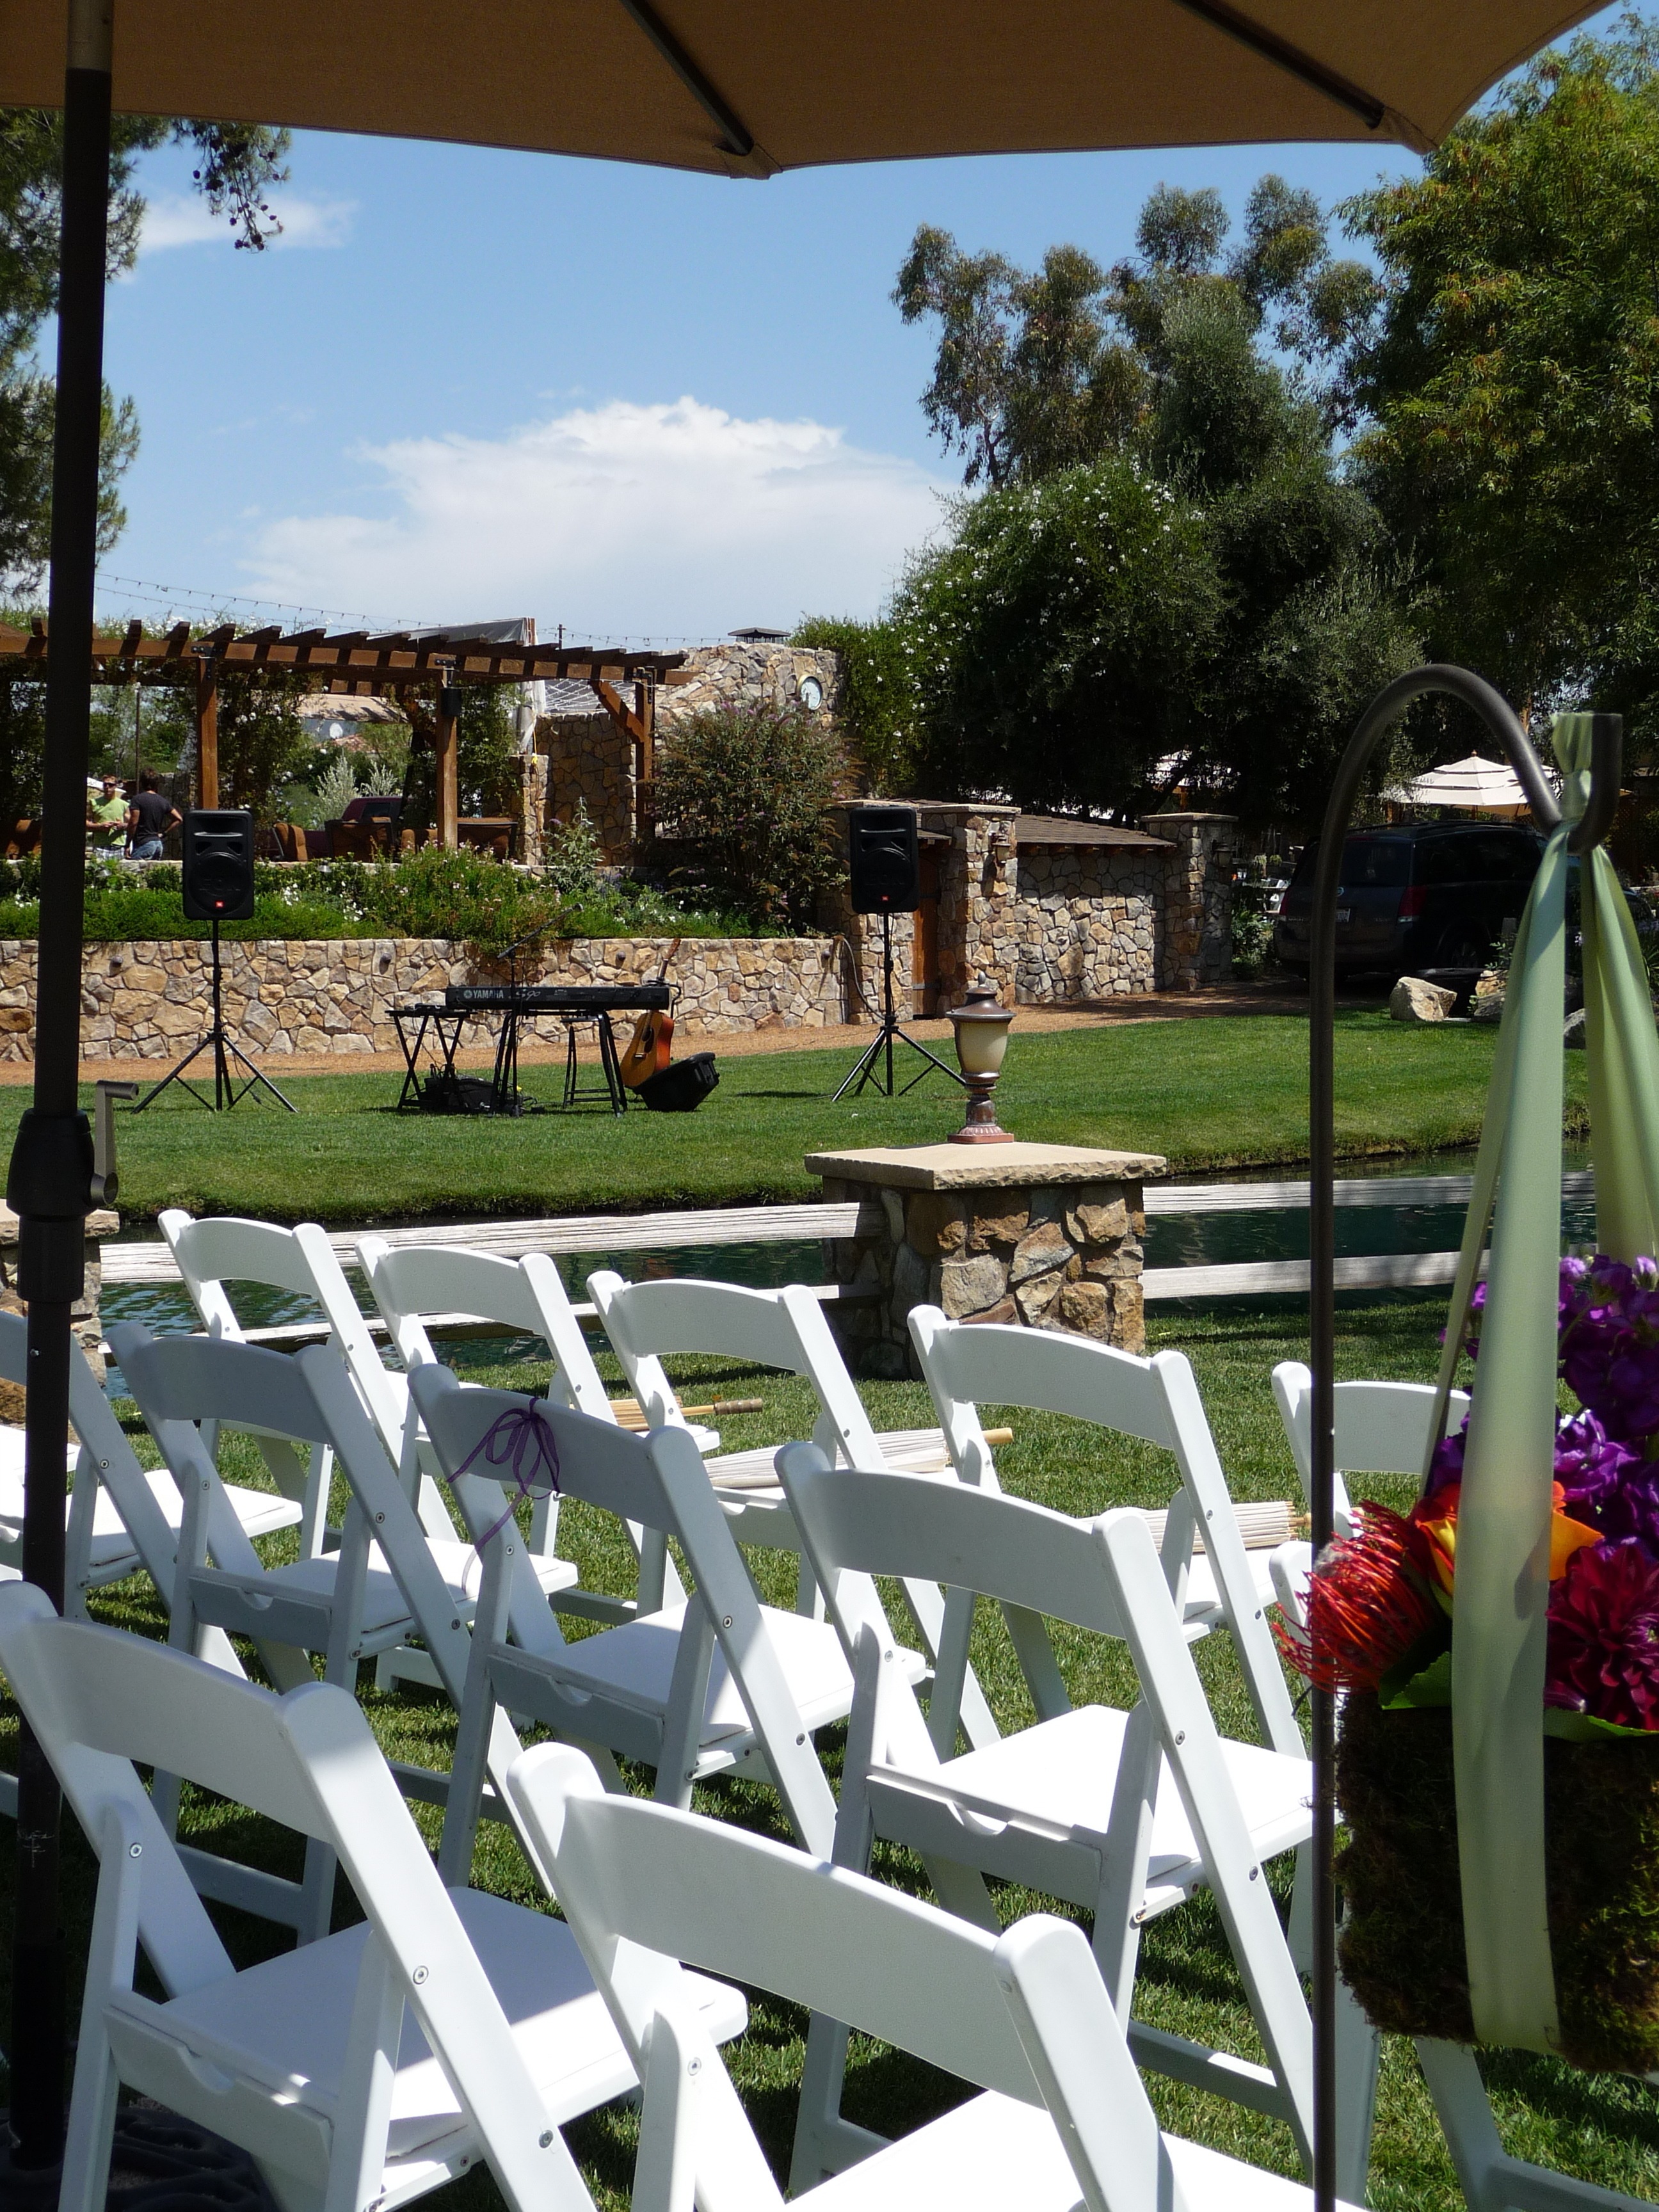 orange, Southern, Cal, Wedding, Music, Guitar, Live, Dj, So, California, County, San, Country, Wine, Productions, Service, Diego, Los, Angeles, Acoustic, Singer, Mike, Drums, Temecula, Duo, Corona, Brian, Live music dj service mike brian productions